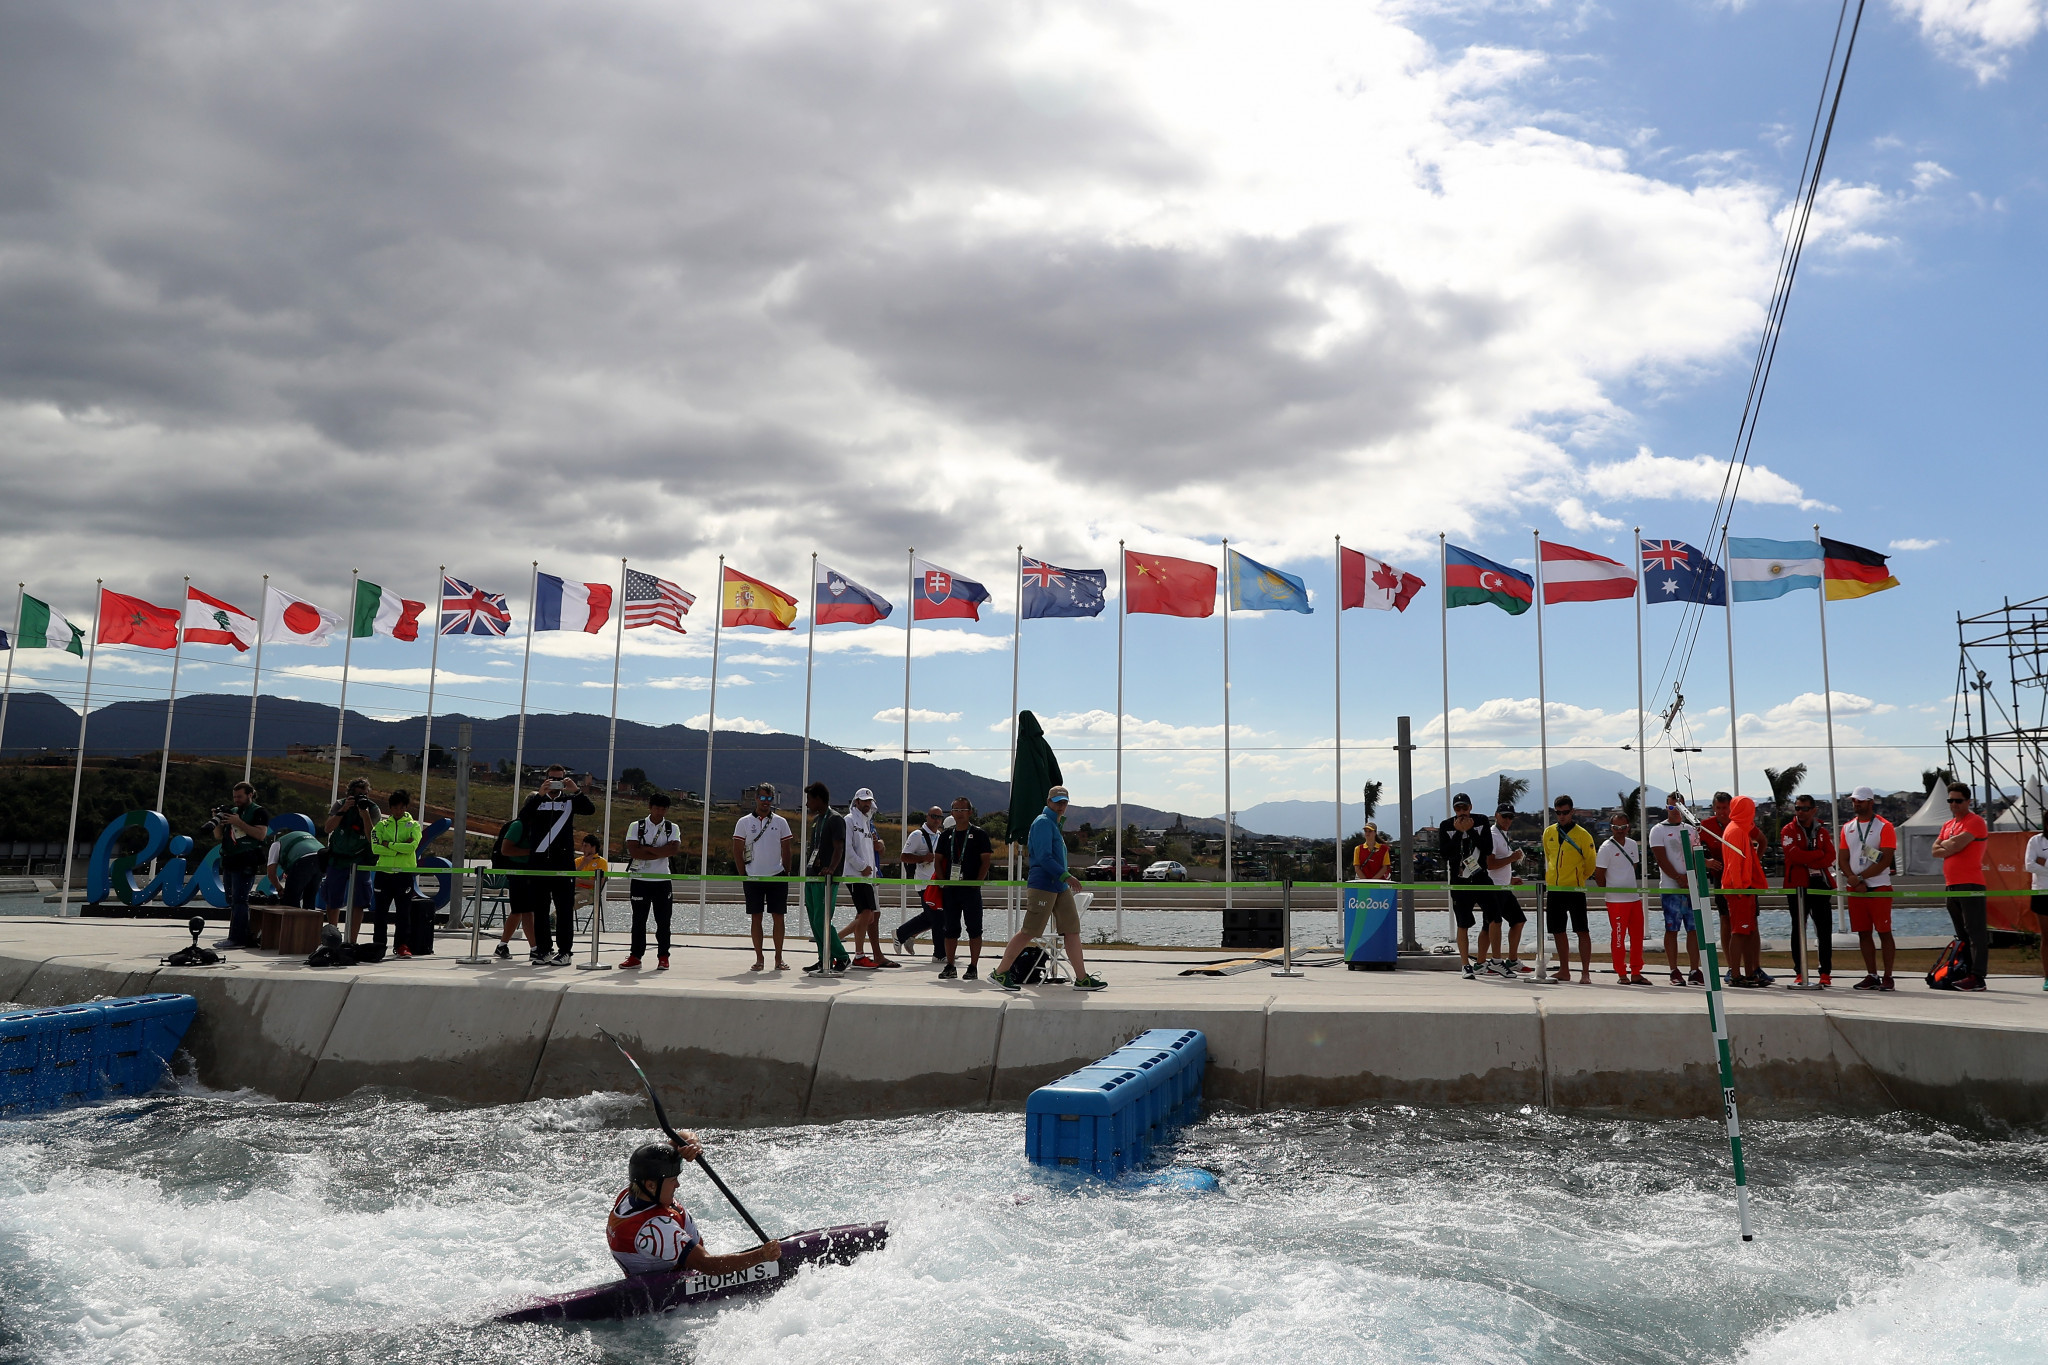 The Rio 2016 Olympics canoe slalom venue is still set to host the Pan-American Tokyo 2020 qualifier ©Getty Images